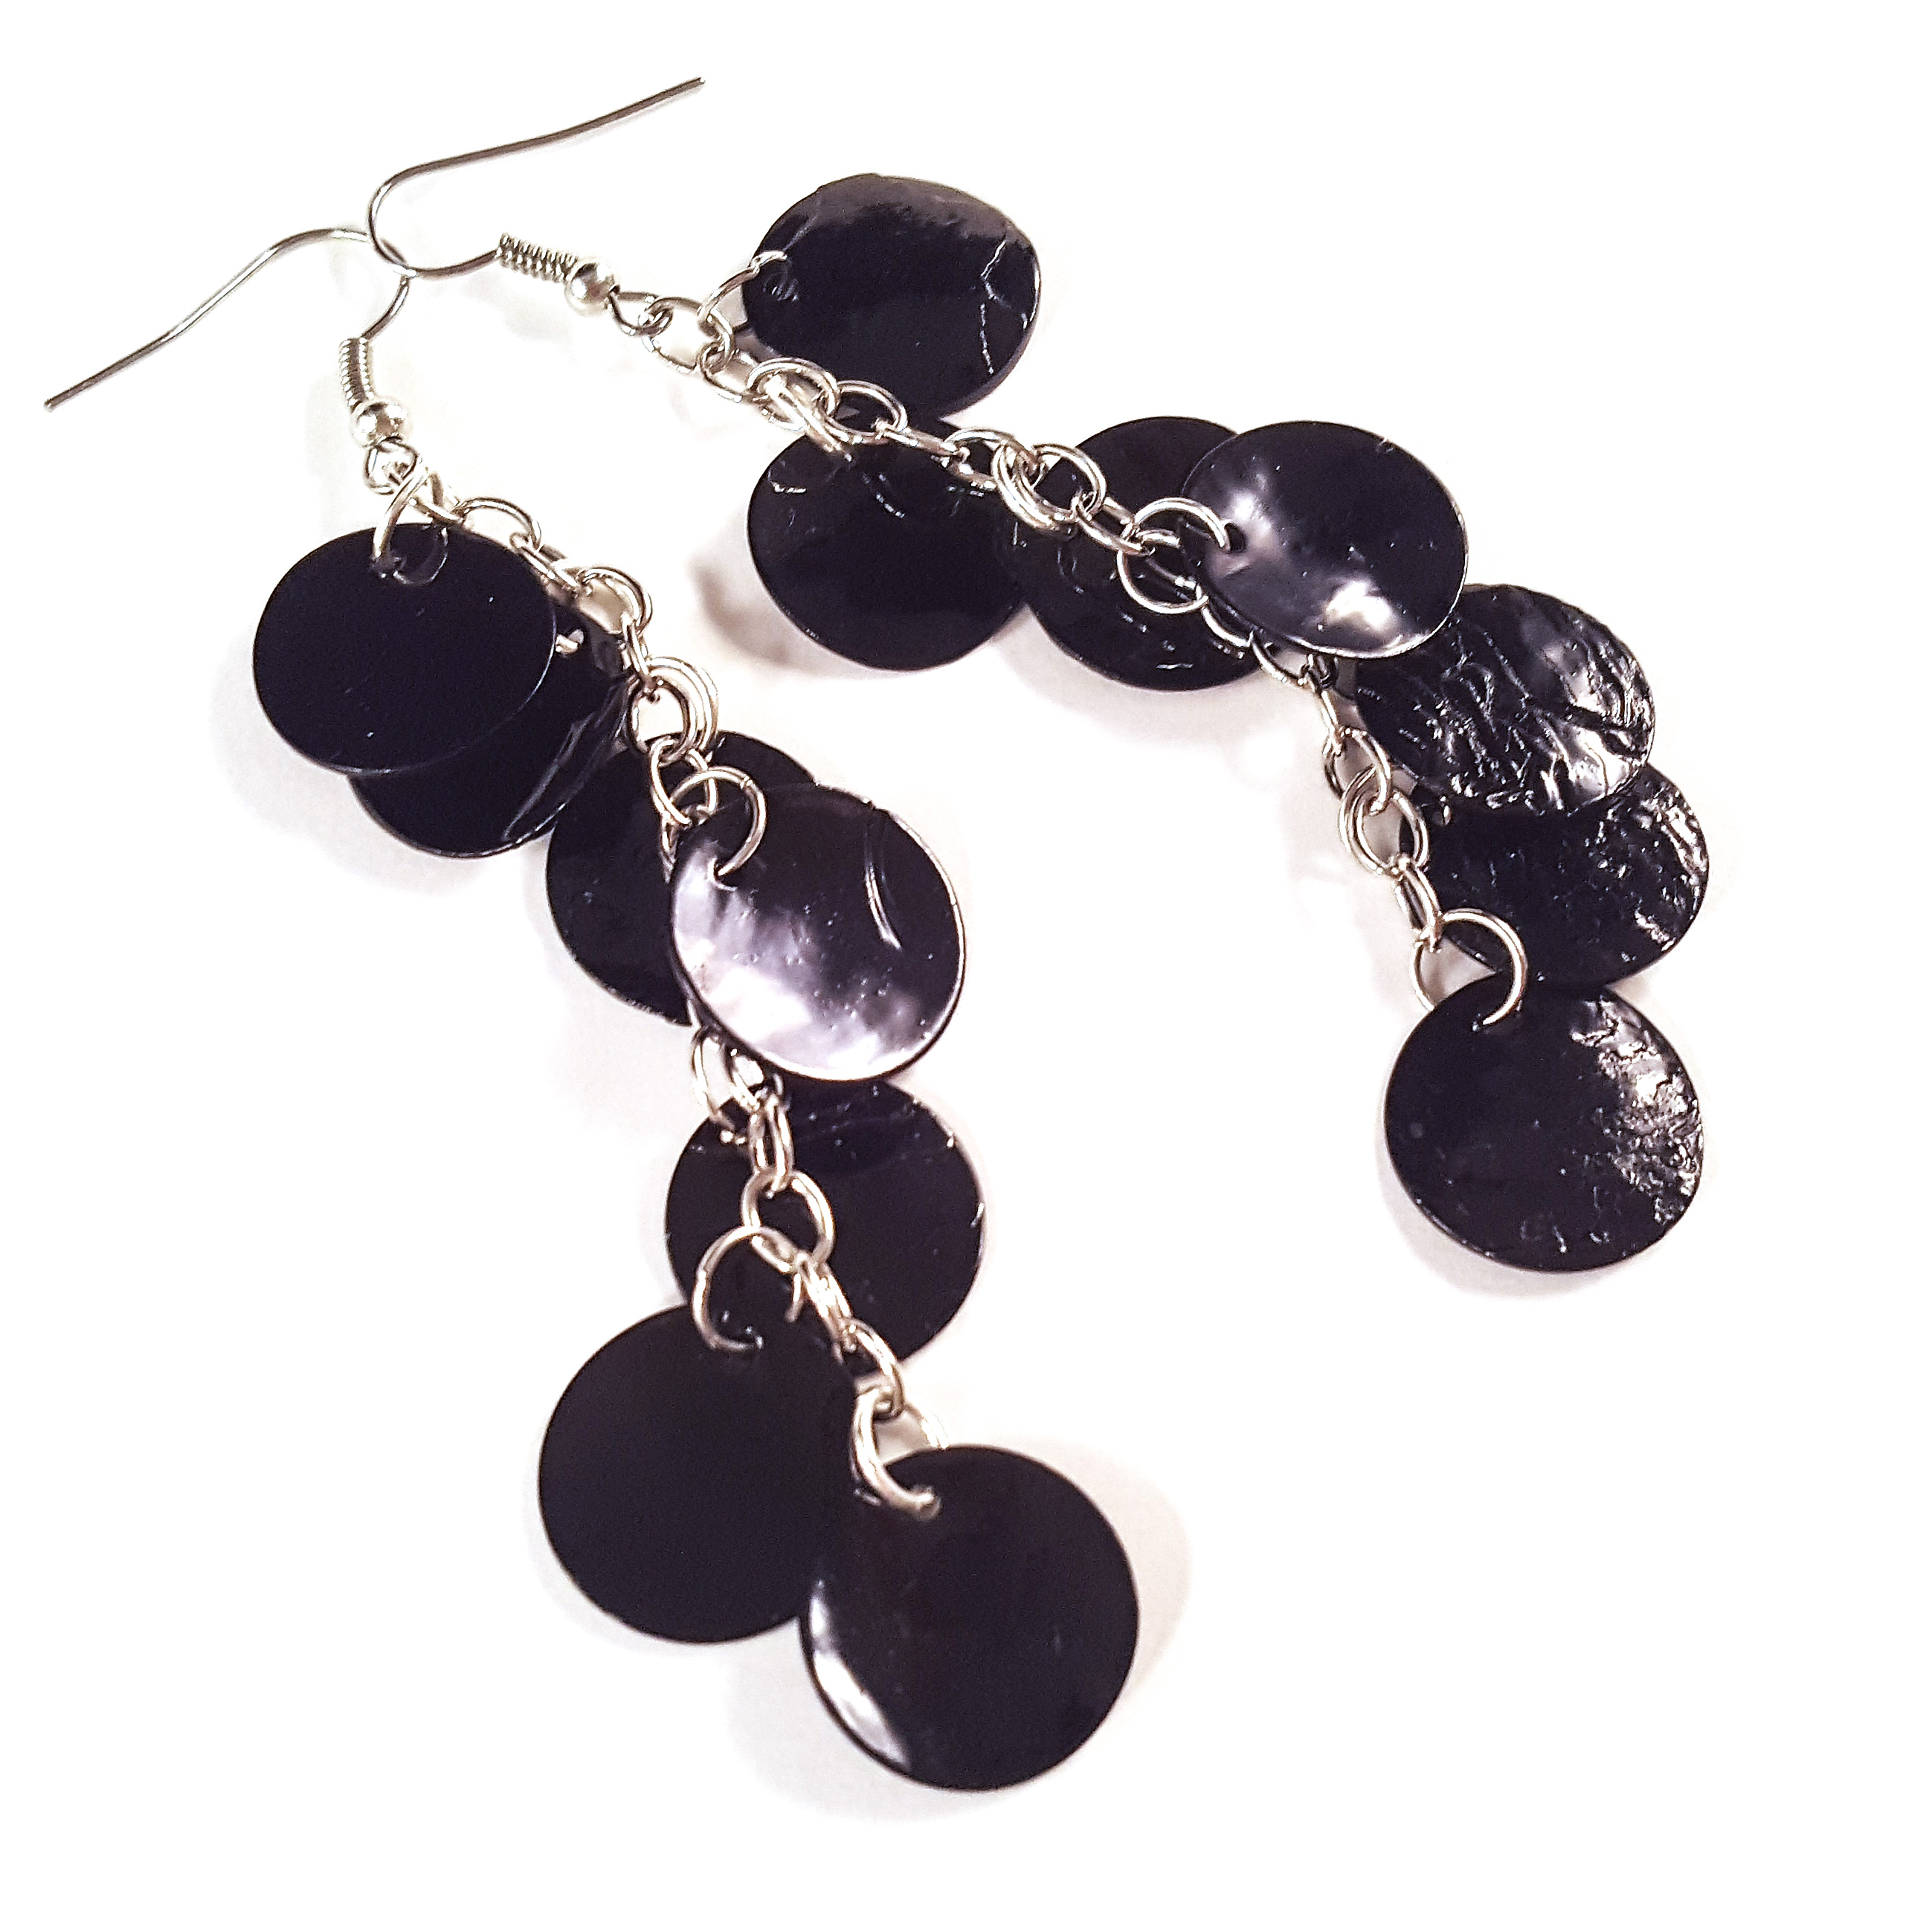 Black Hatchling Dragon Scale Earrings by Wilde Designs